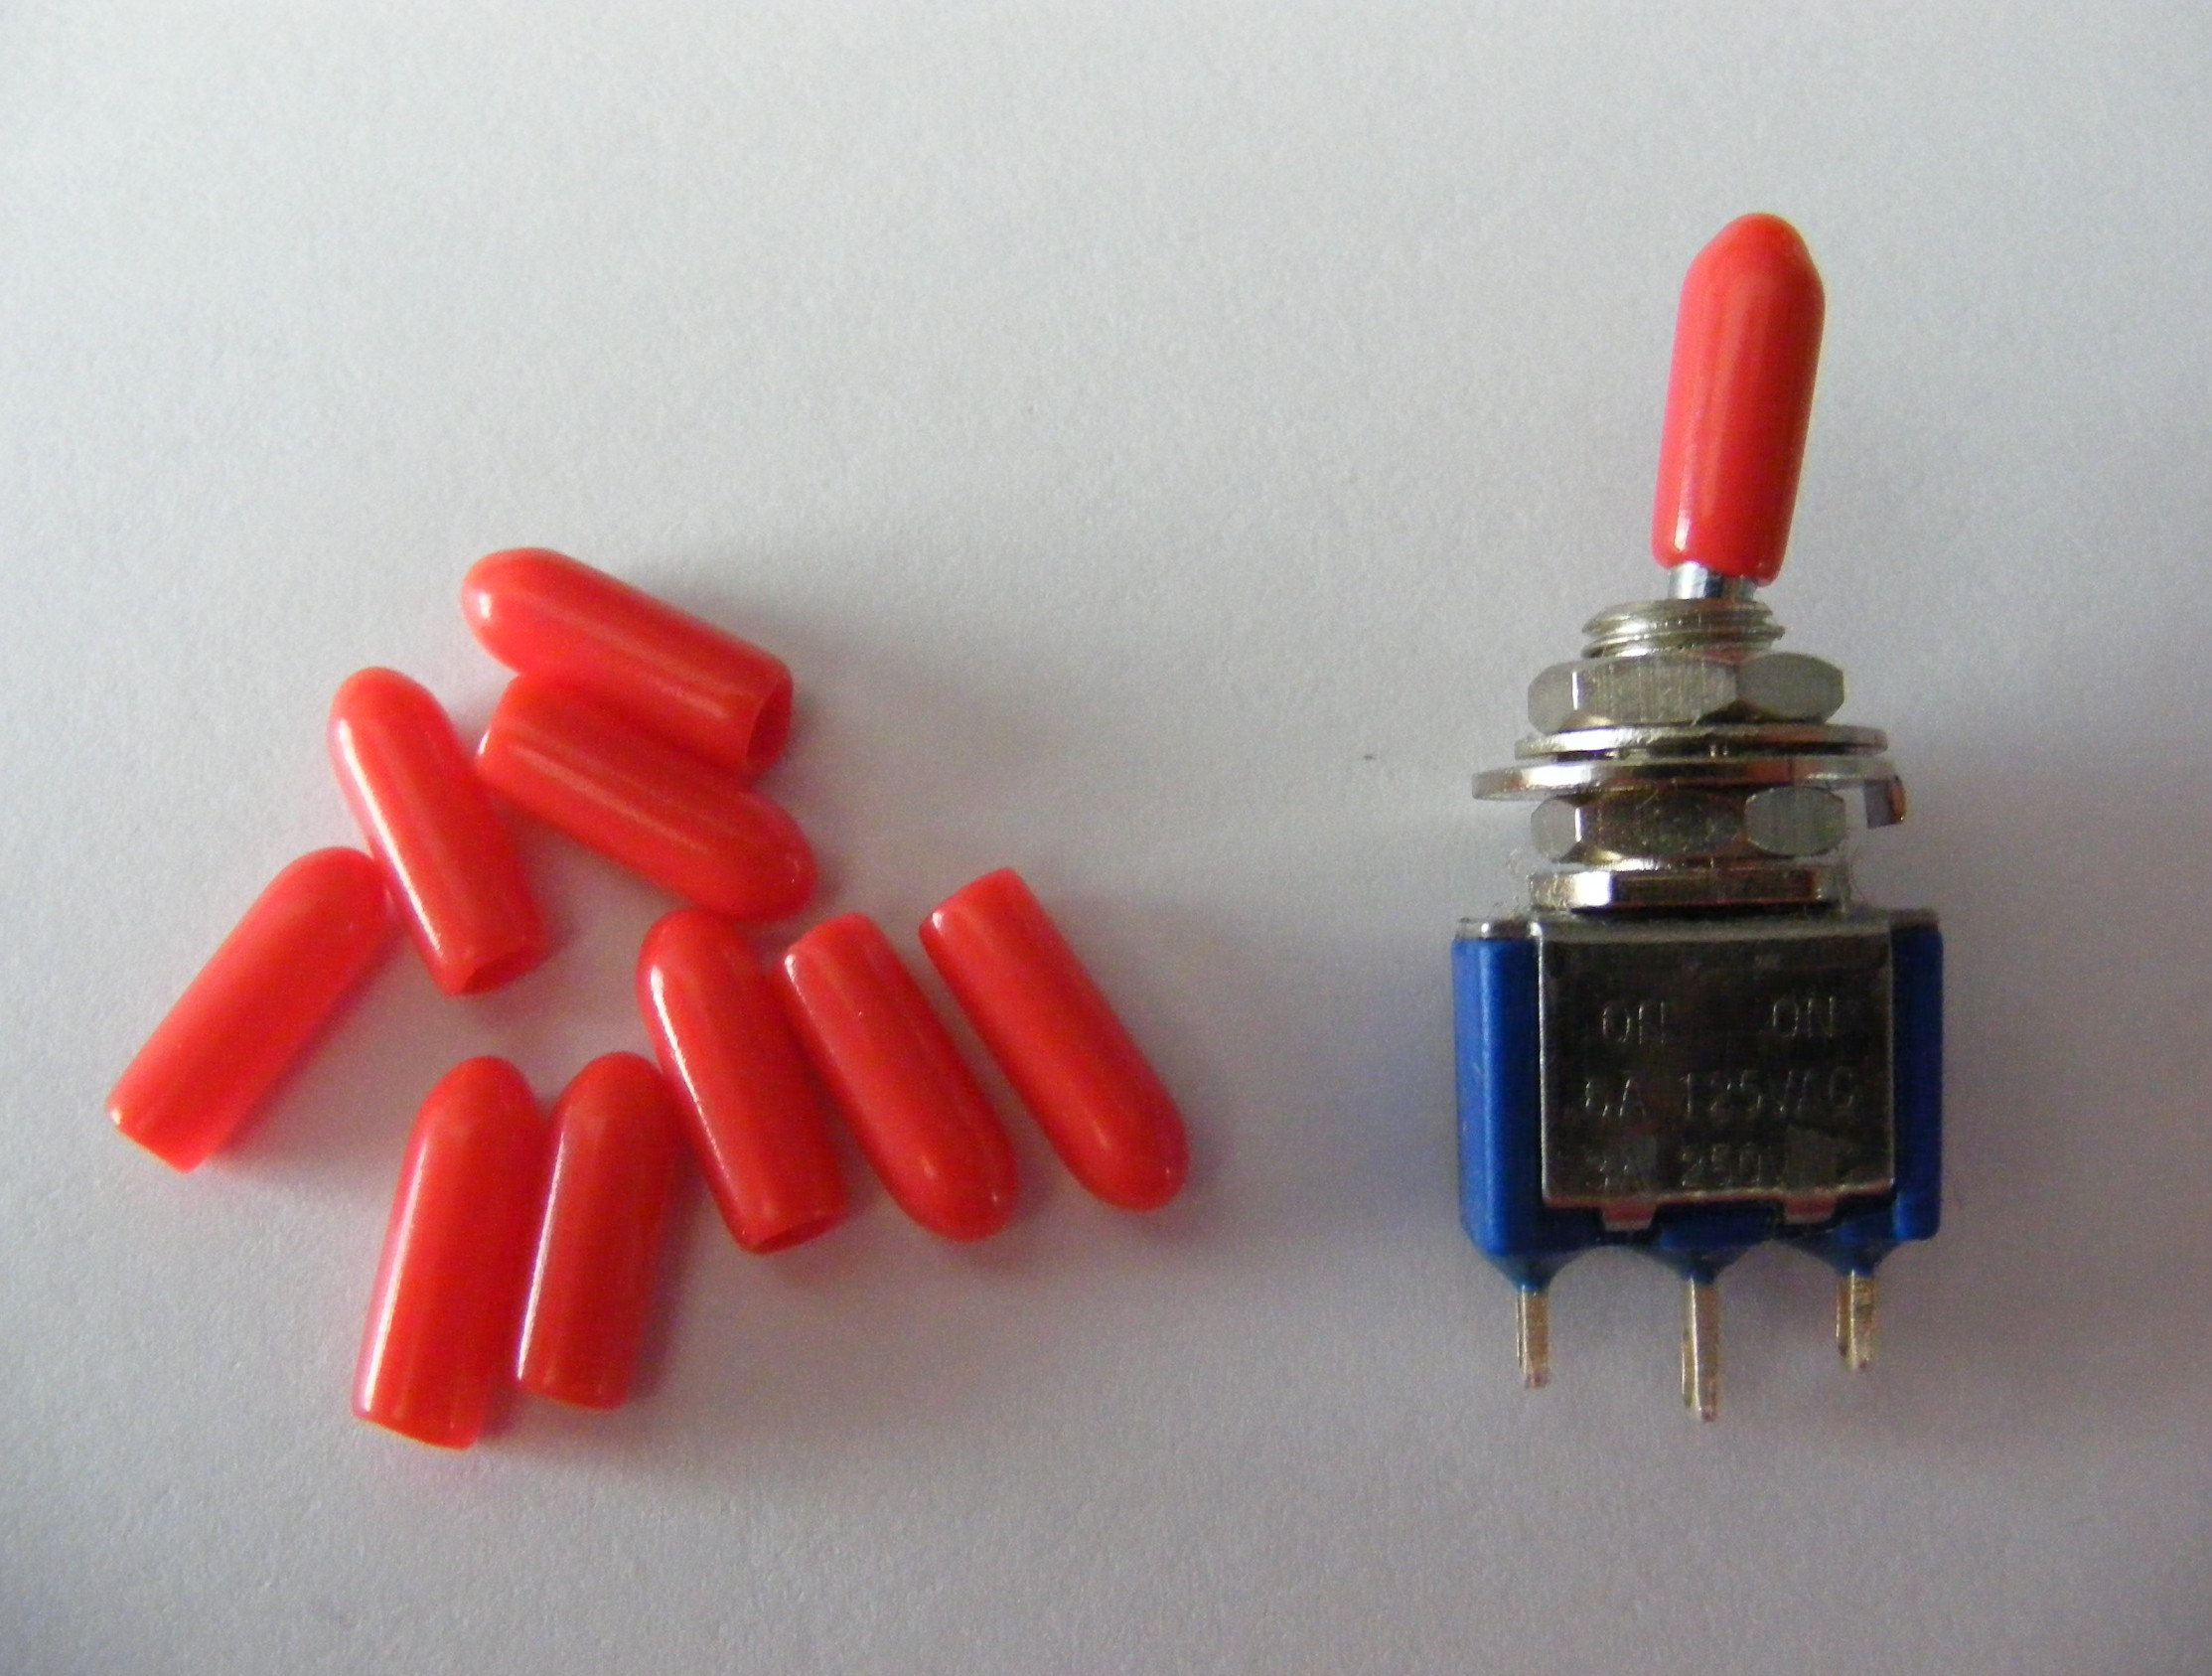 12 X Red Miniature Toggle Switch Covers Tsc01 Ebay